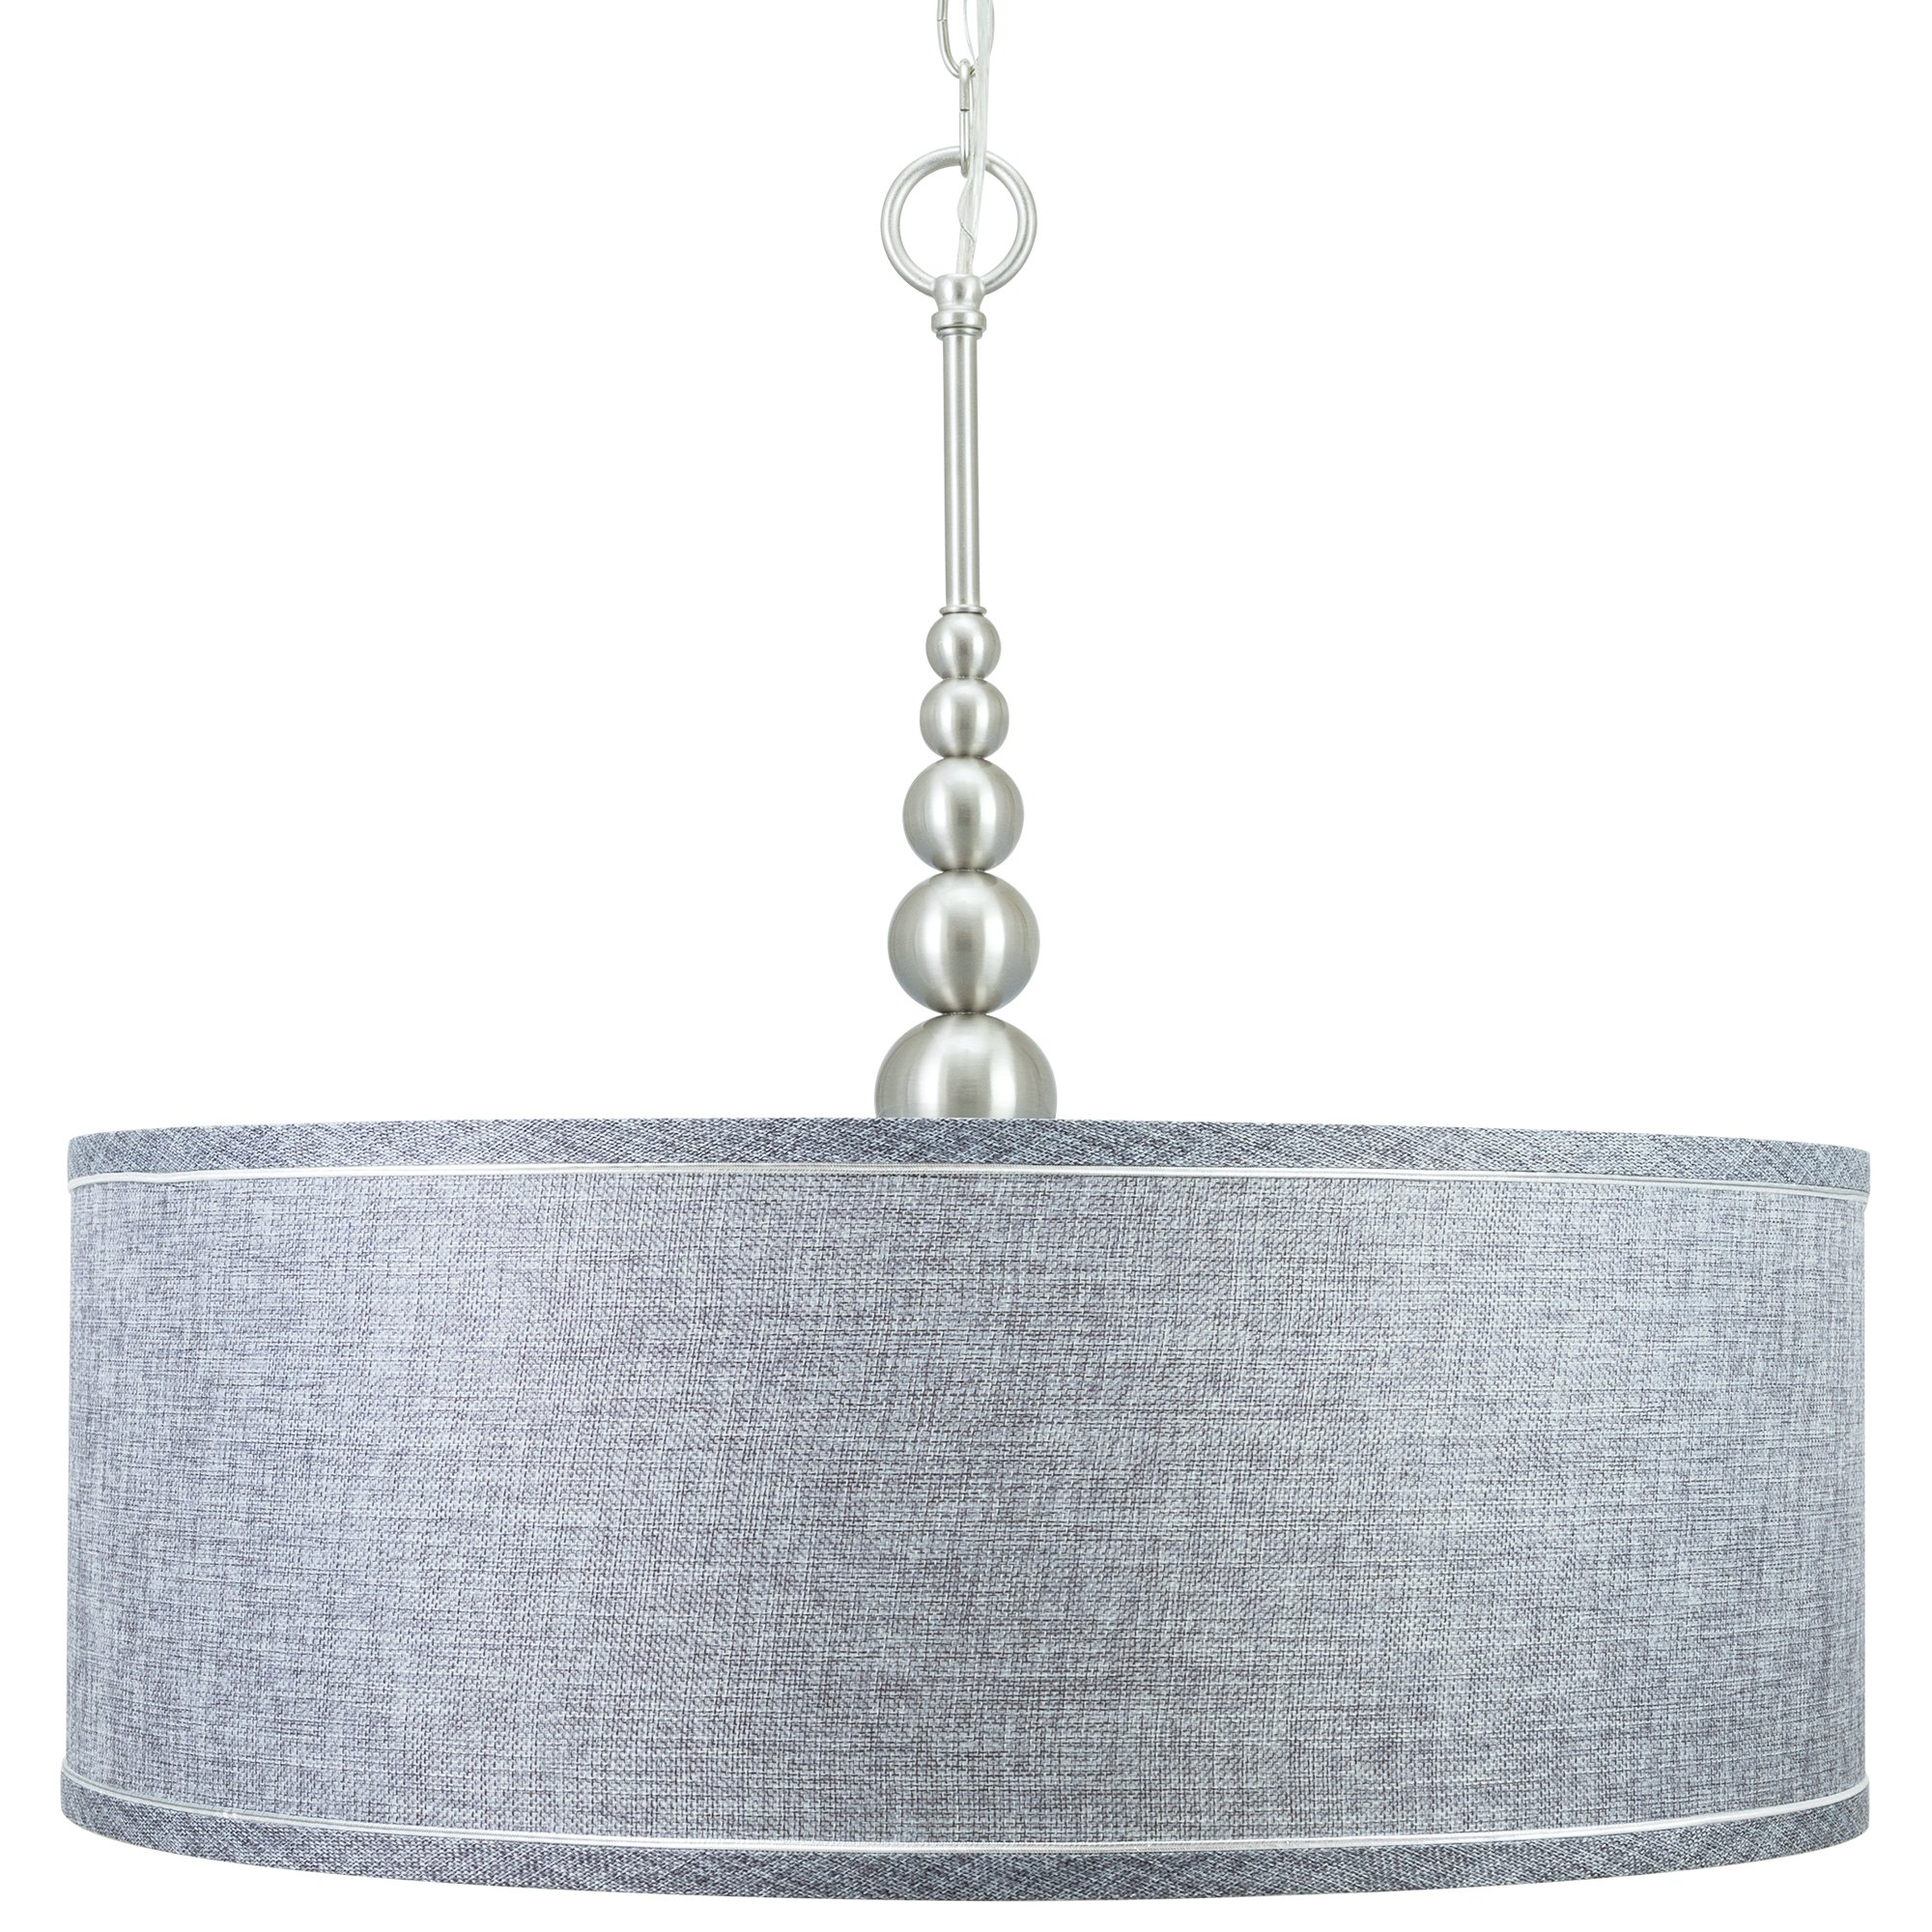 "Revel Adelade 22"" Modern Brushed Nickel Chandelier w Grey Fabric"